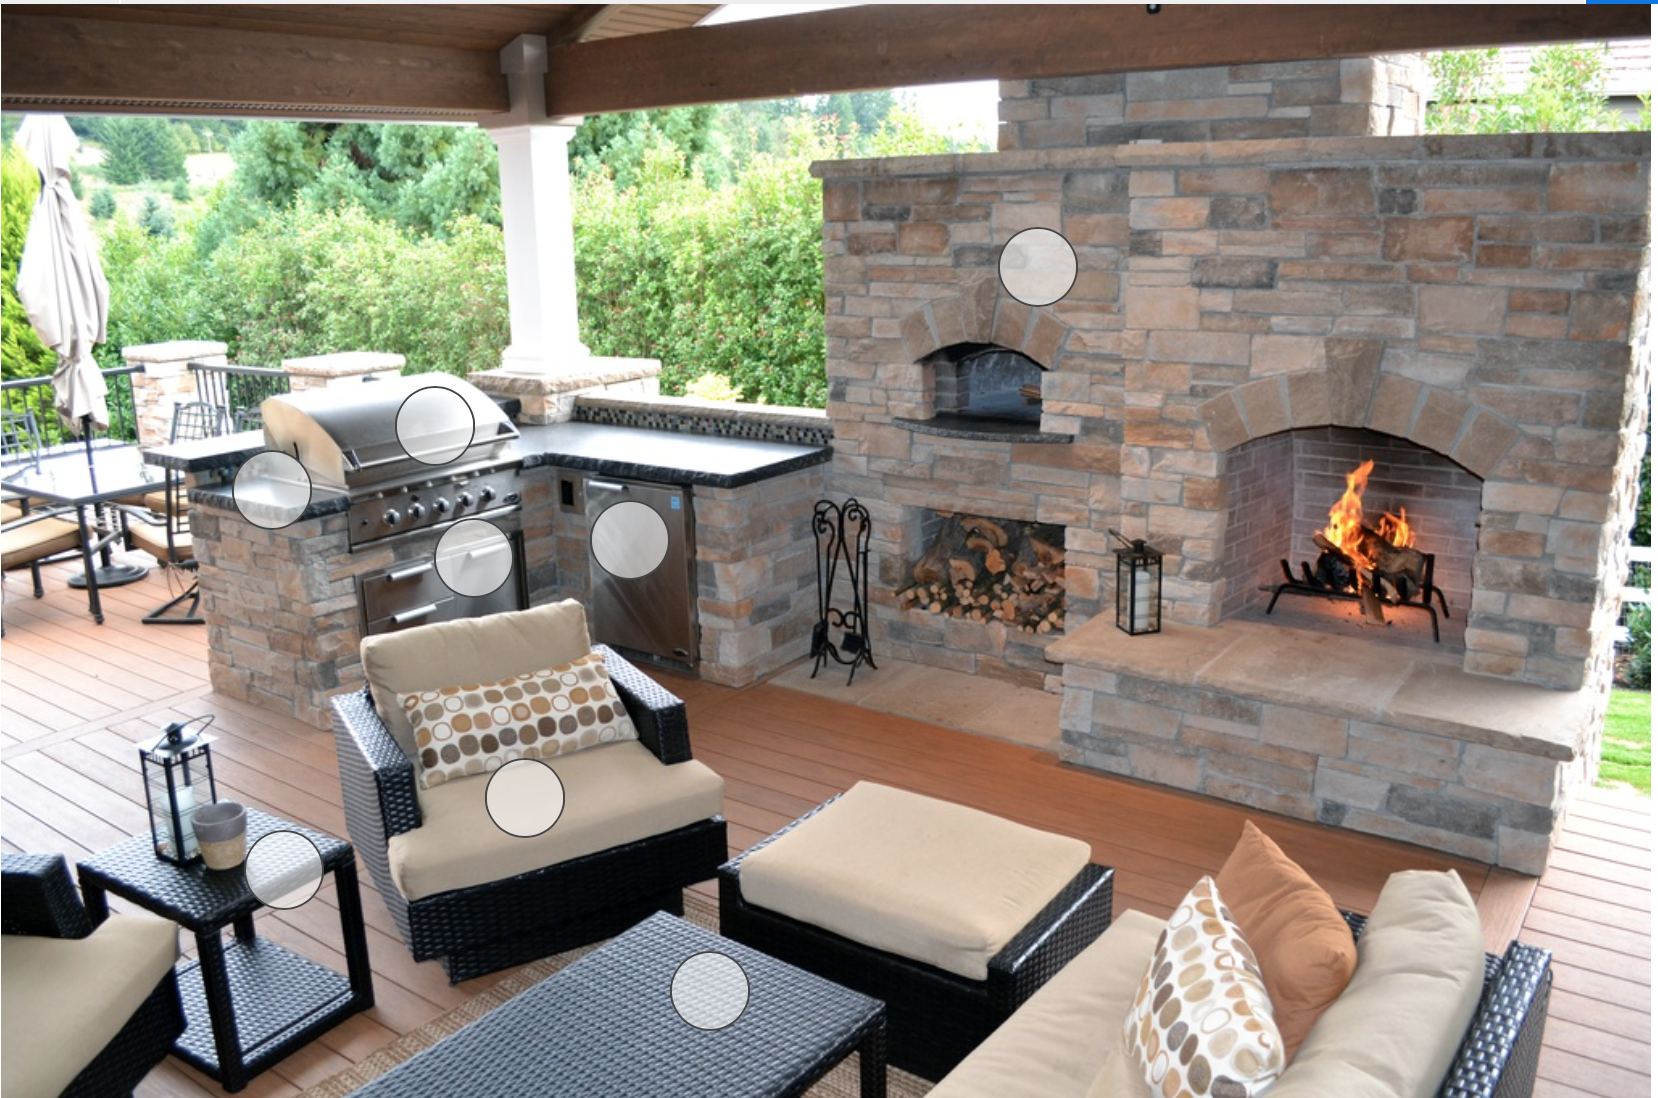 Outdoor kitchen by Patricia Melbourne on Decks and Patios